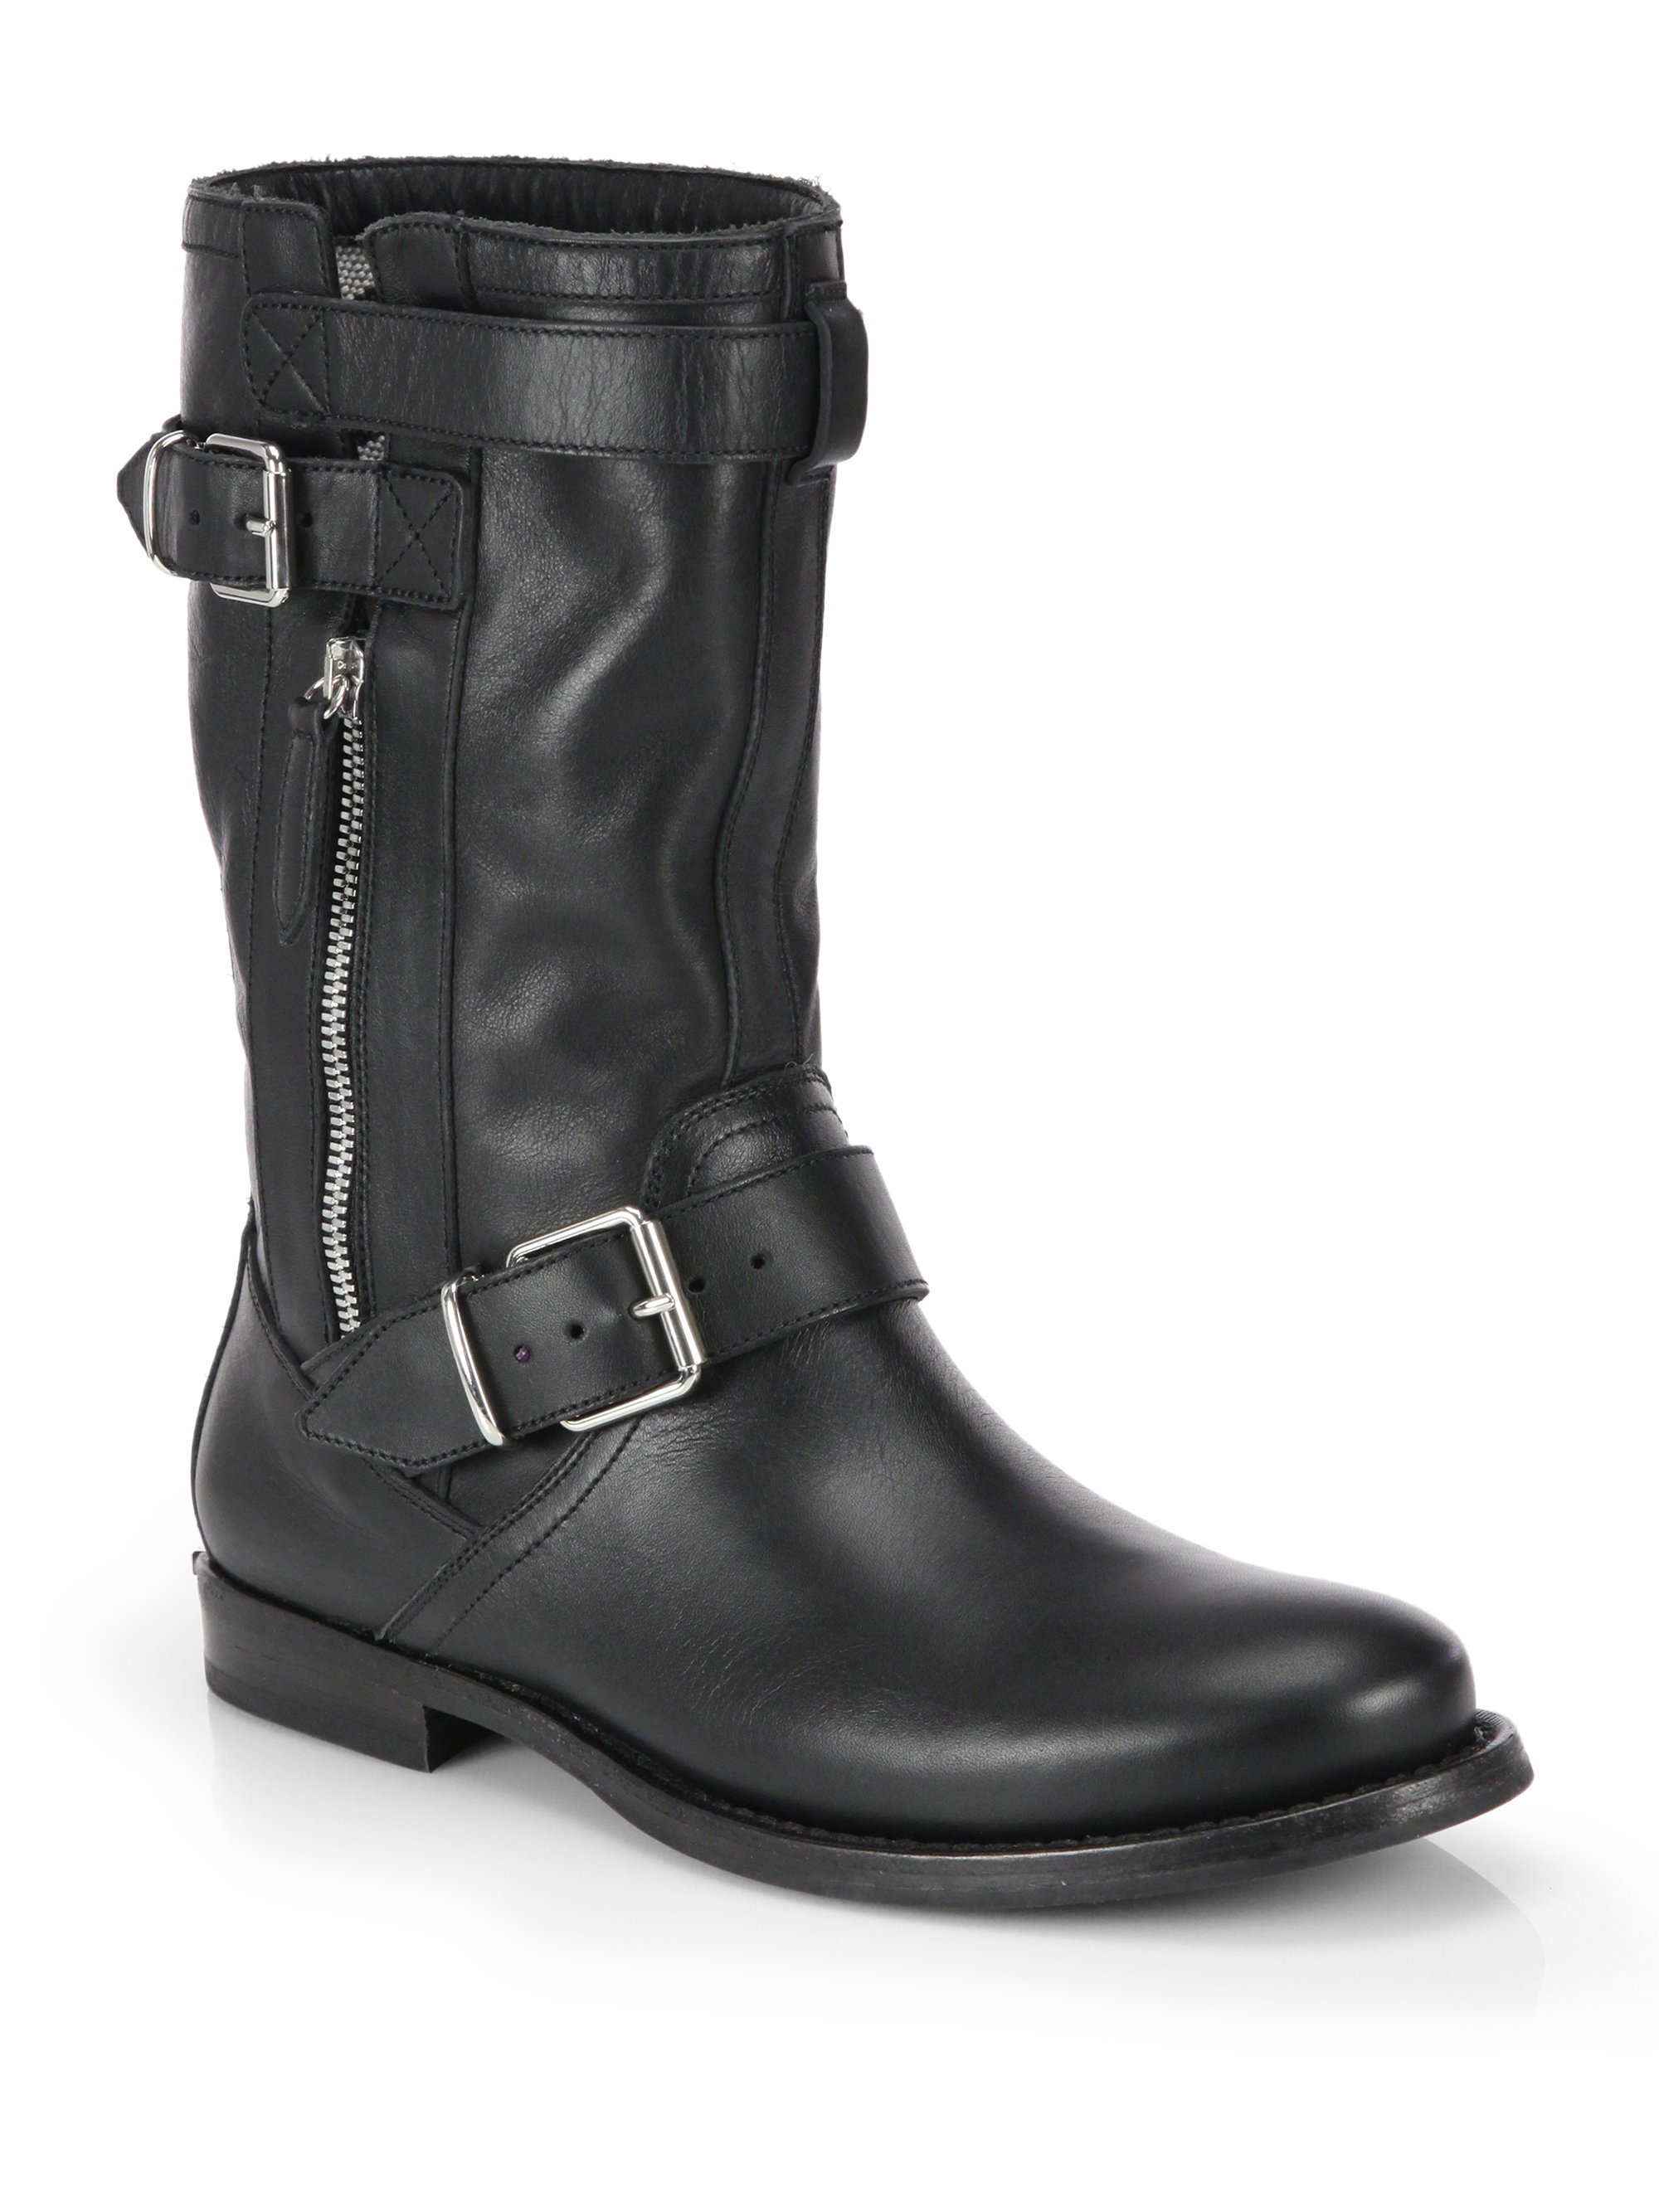 Burberry Grantville Leather Buckle Mid Calf Boots In Black